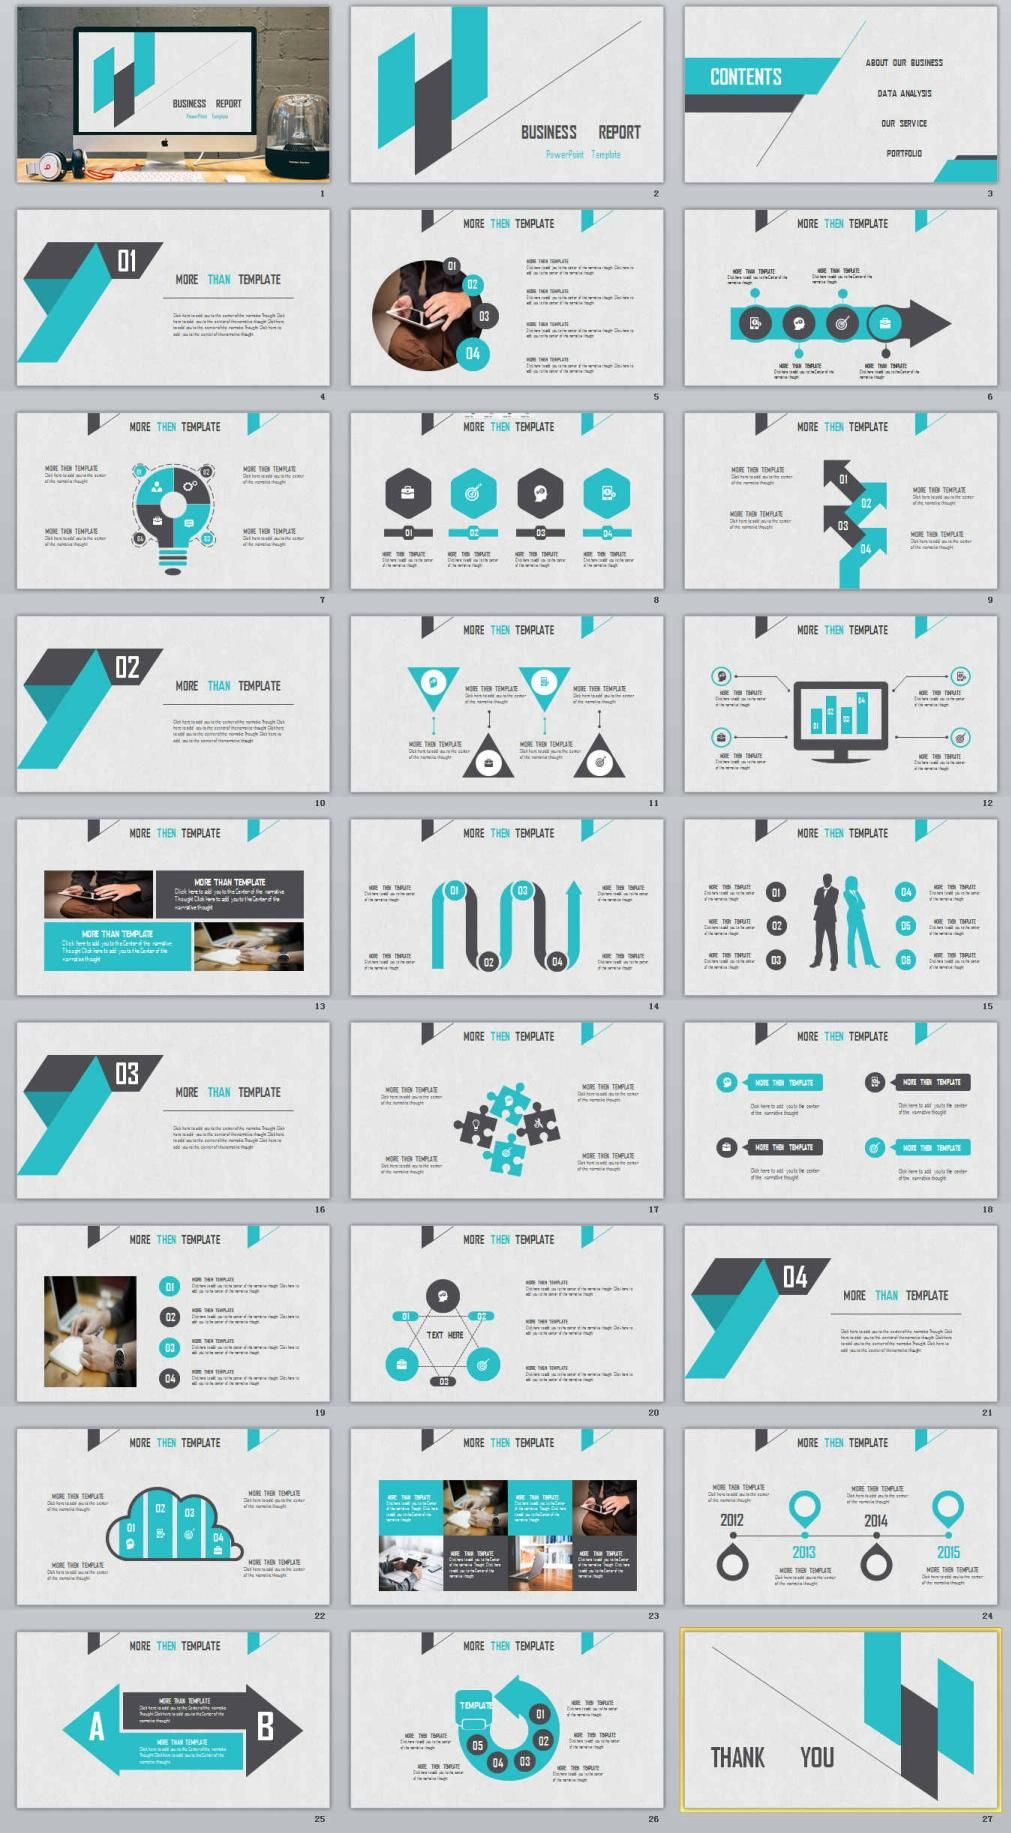 27 business report powerpoint templates 27 business report powerpoint templates powerpoint templates and keynote templates toneelgroepblik Choice Image